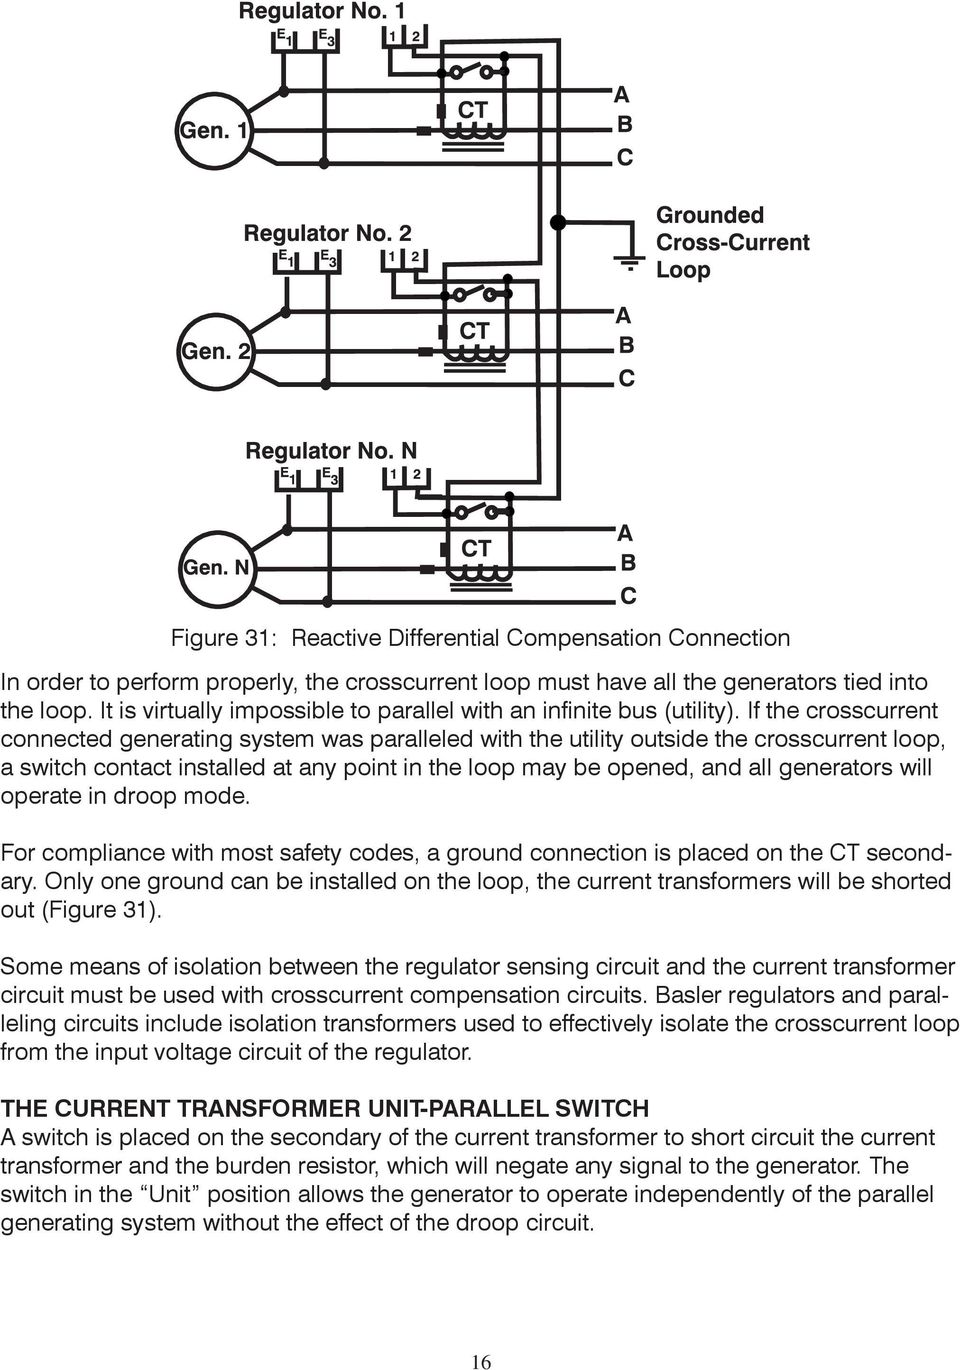 If the crosscurrent connected generating system was paralleled with the utility outside the crosscurrent loop, a switch contact installed at any point in the loop may be opened, and all generators